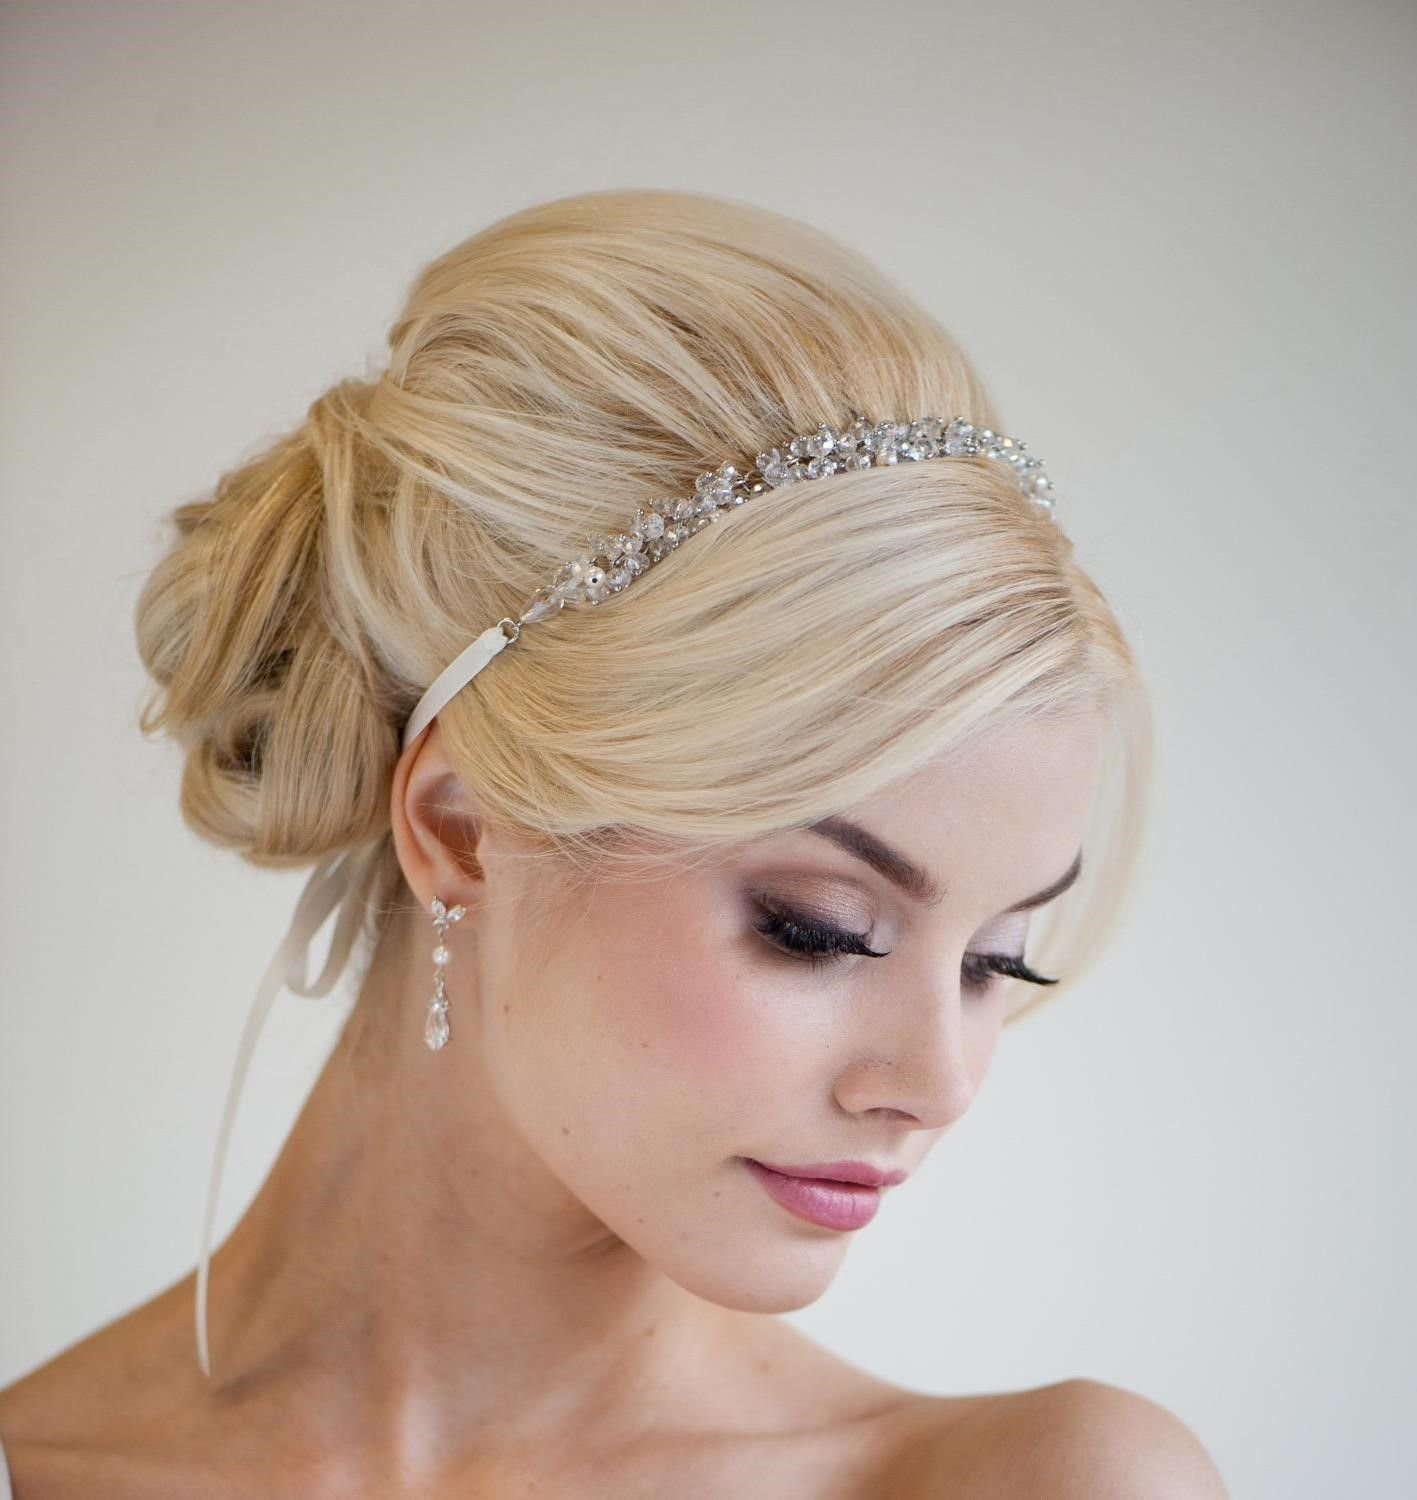 The Best Wedding Hair Updo With Headband Wedding Hairstyles In Pictures